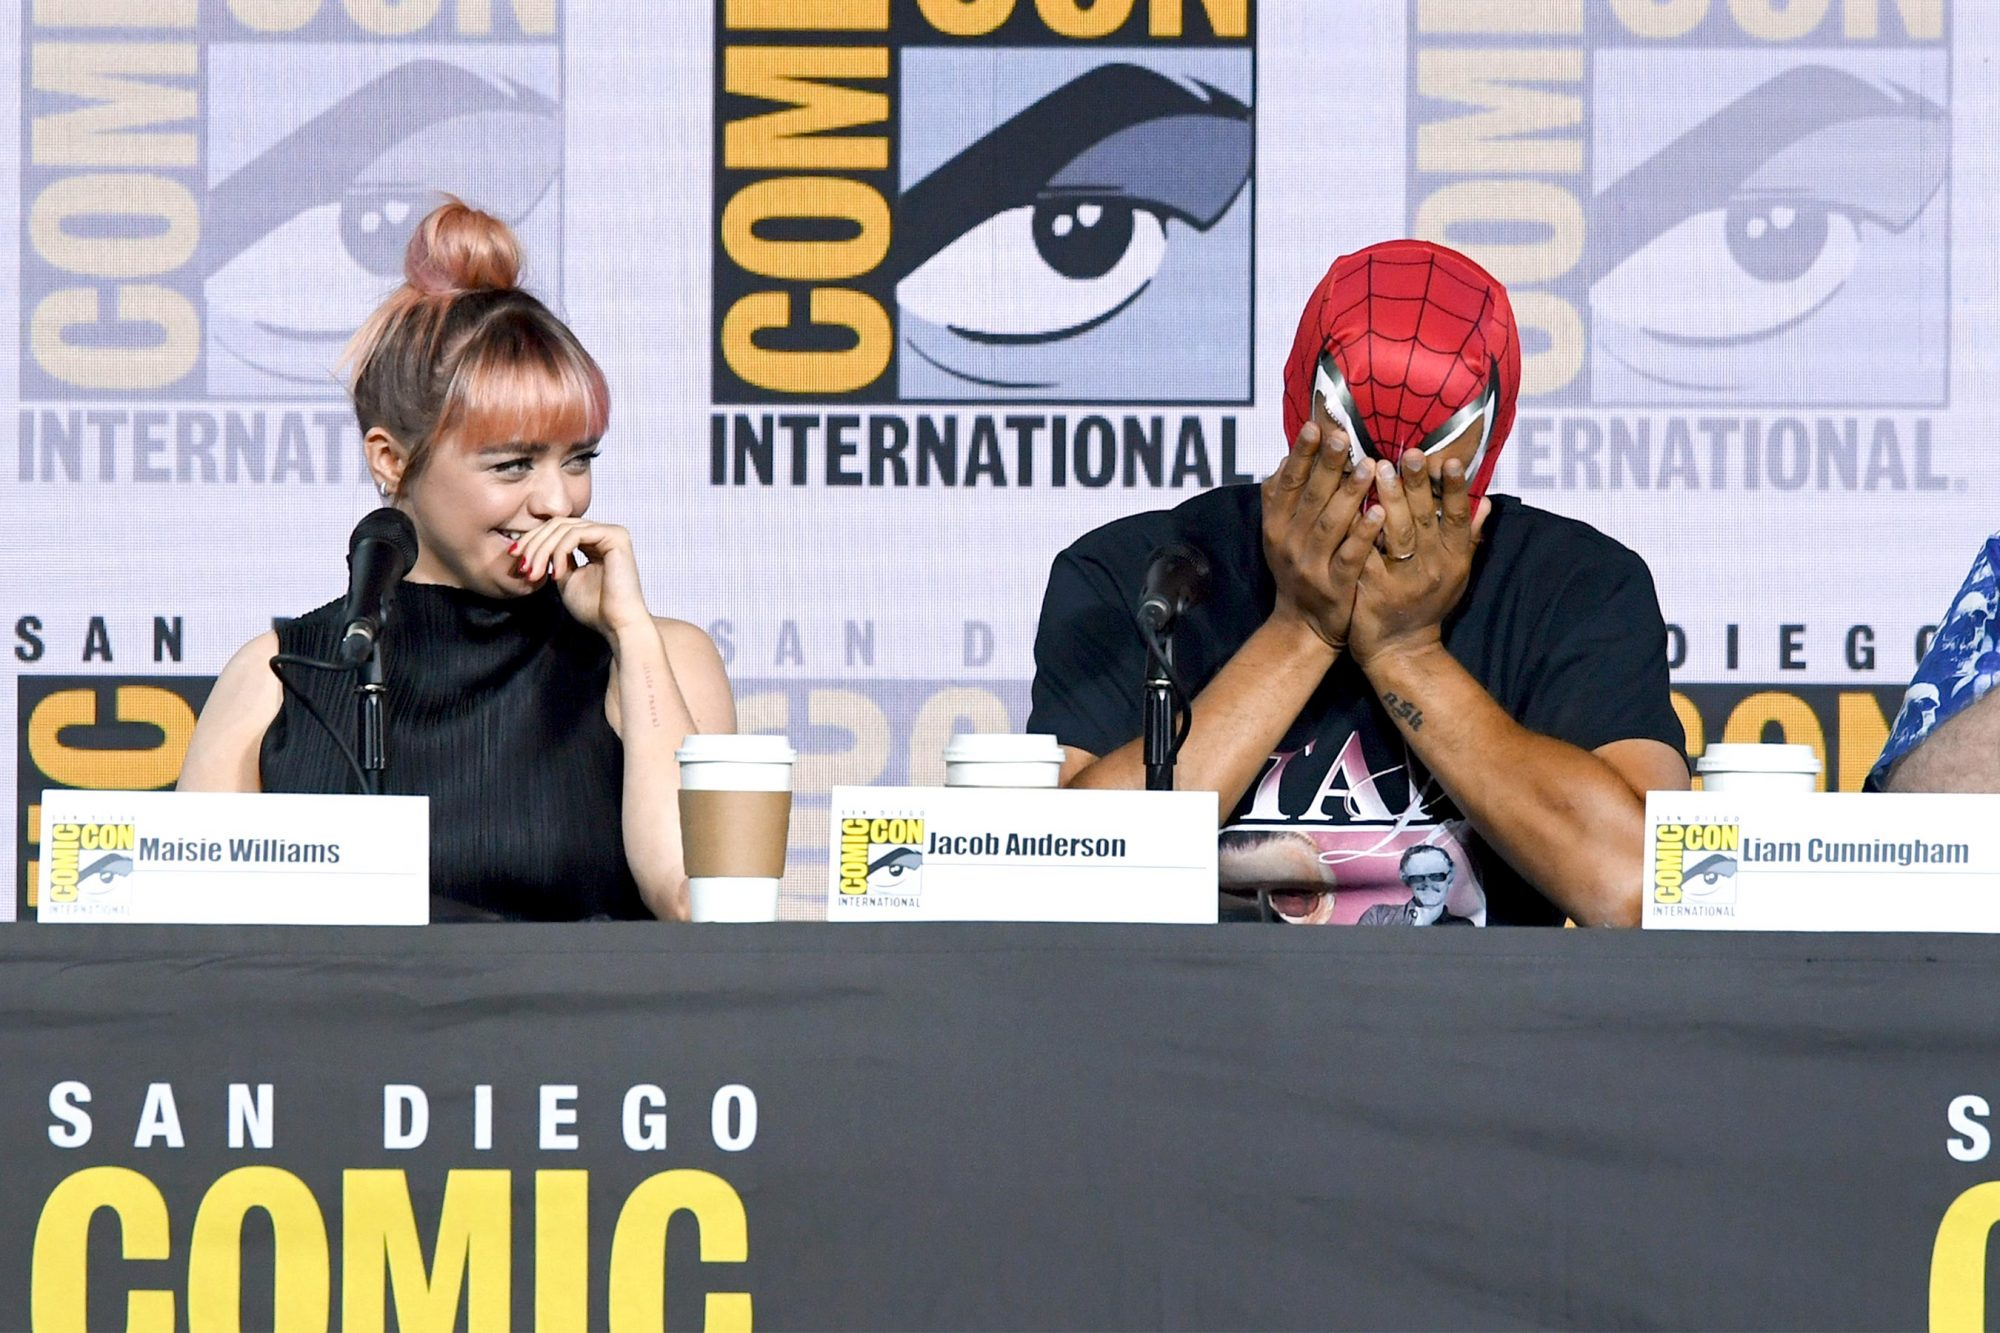 """SAN DIEGO, CALIFORNIA - JULY 19: (L-R) Maisie Williams and Jacob Anderson speak at the """"Game Of Thrones"""" Panel And Q&A during 2019 Comic-Con International at San Diego Convention Center on July 19, 2019 in San Diego, California. (Photo by Kevin Winter/Getty Images)"""